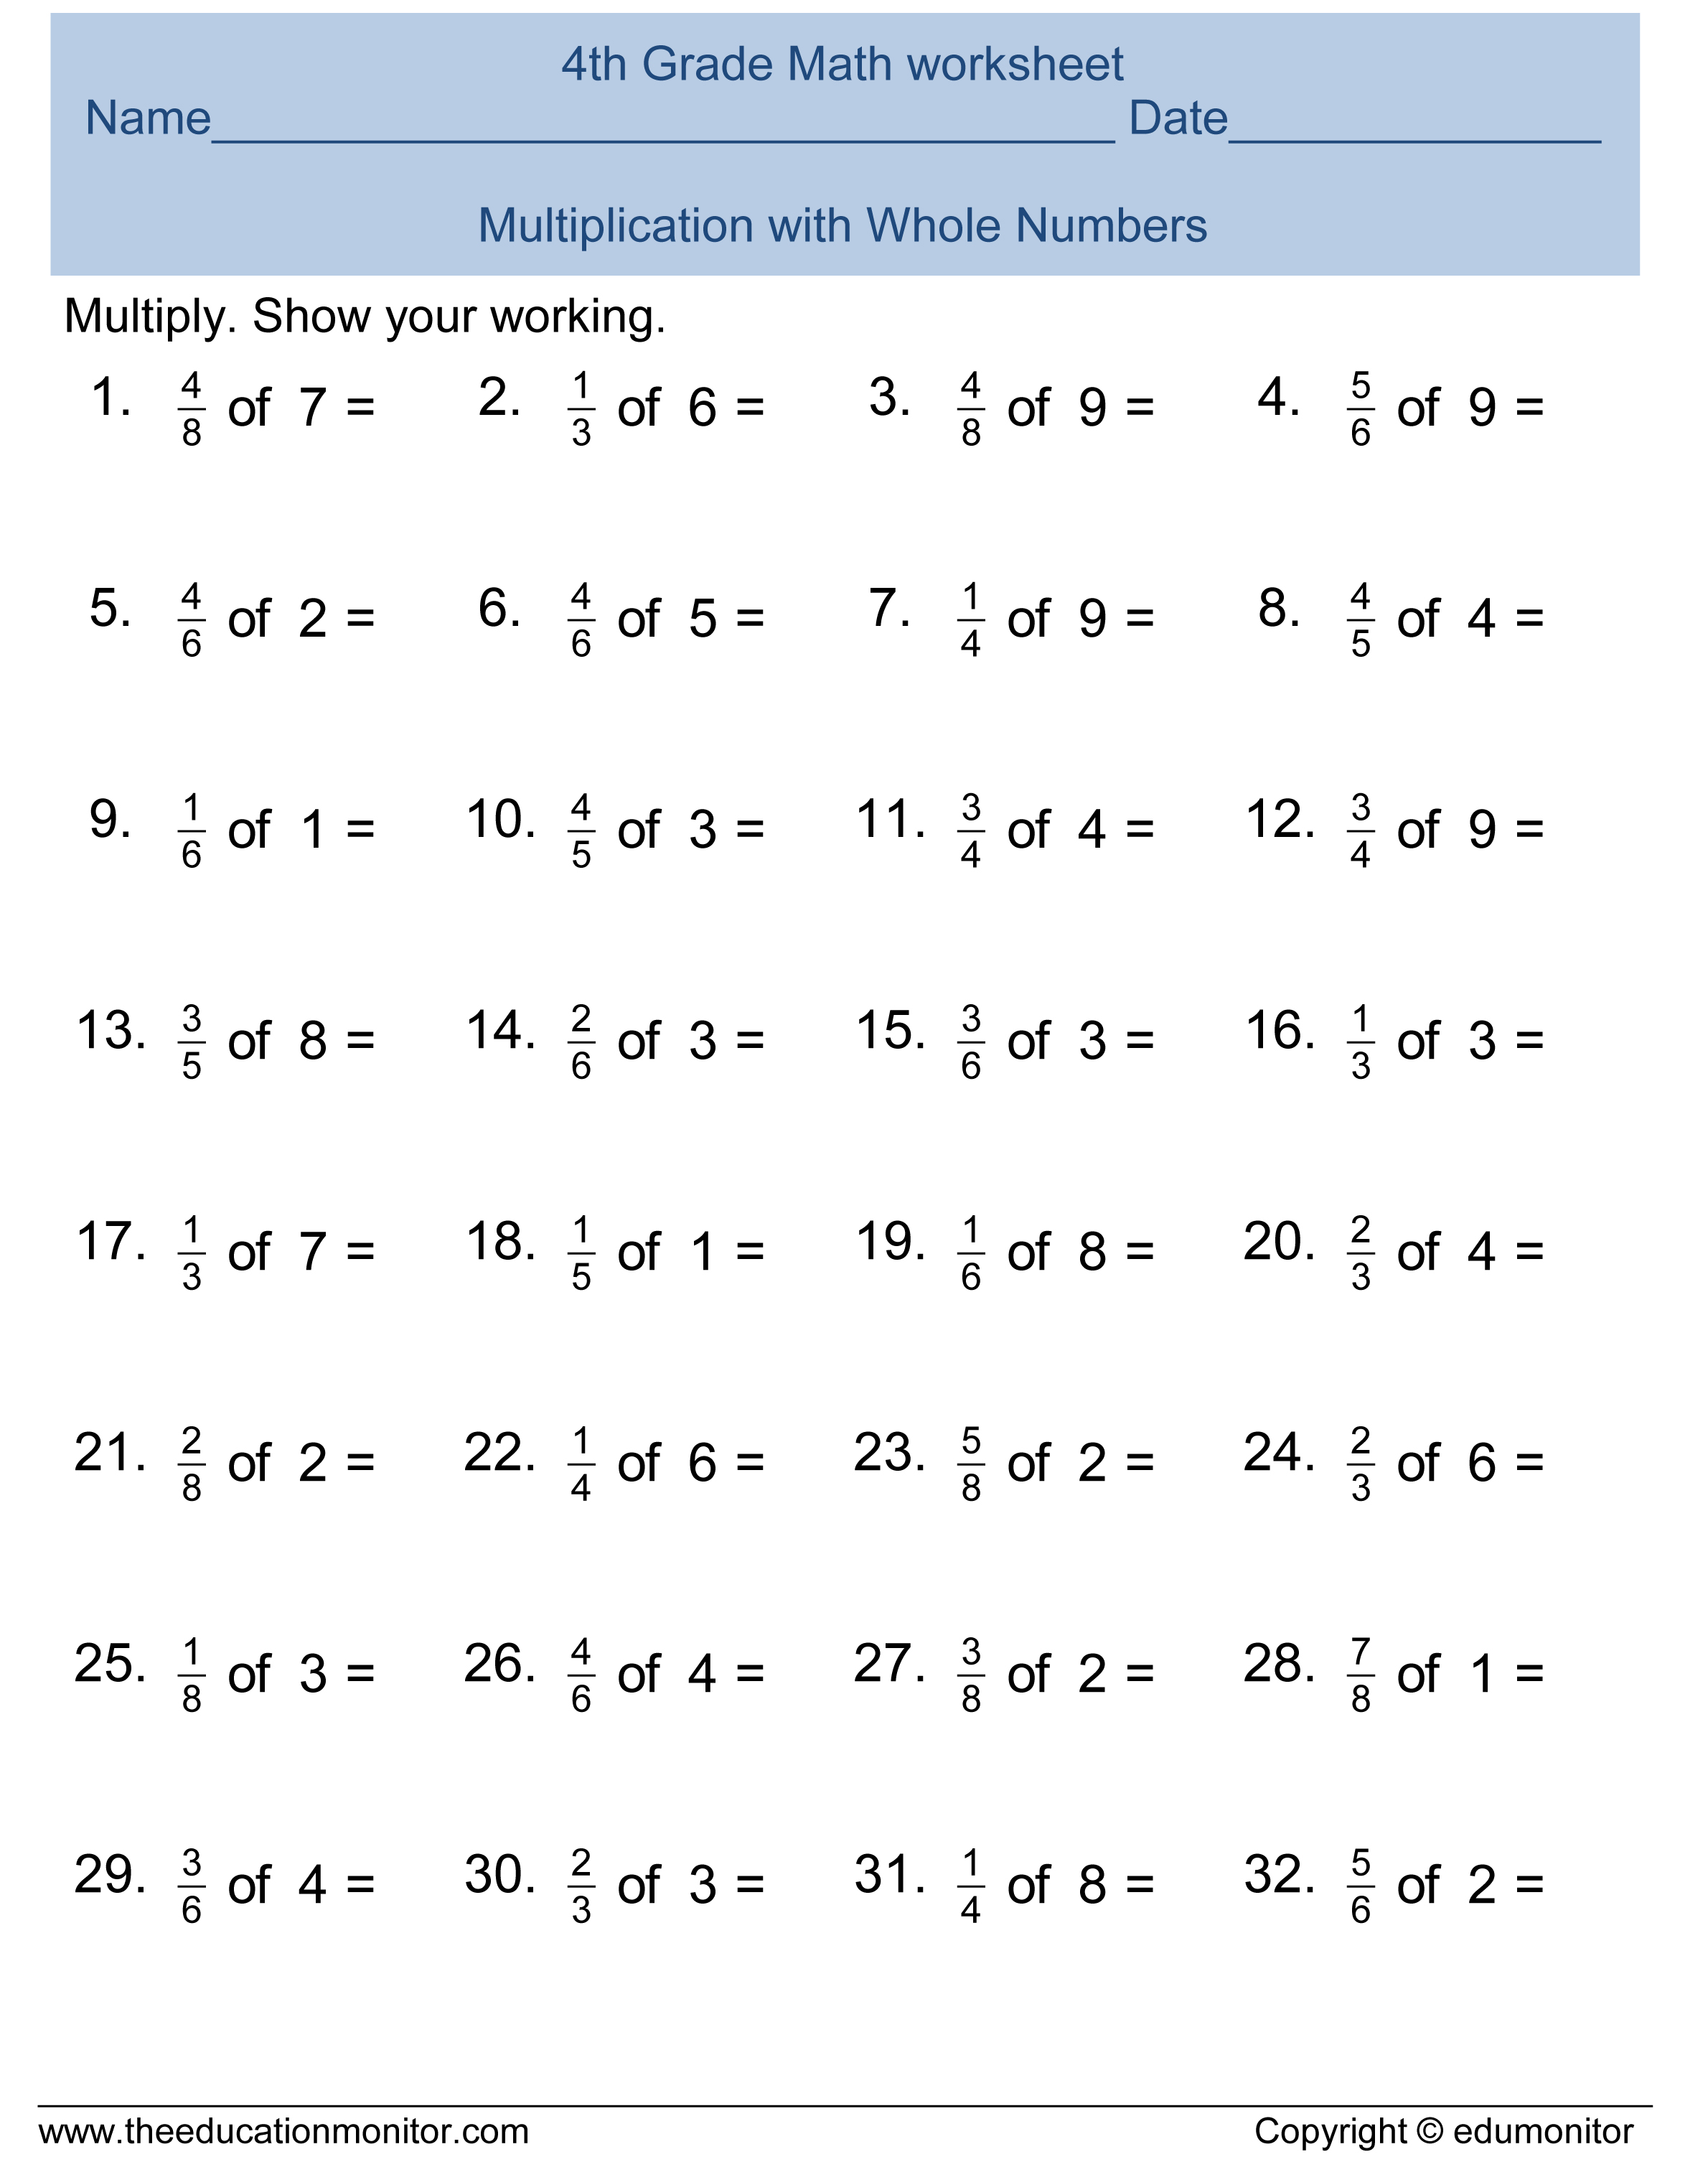 math worksheet : free printable worksheets for 4th grade : Math Worksheets For 4th Grade Multiplication